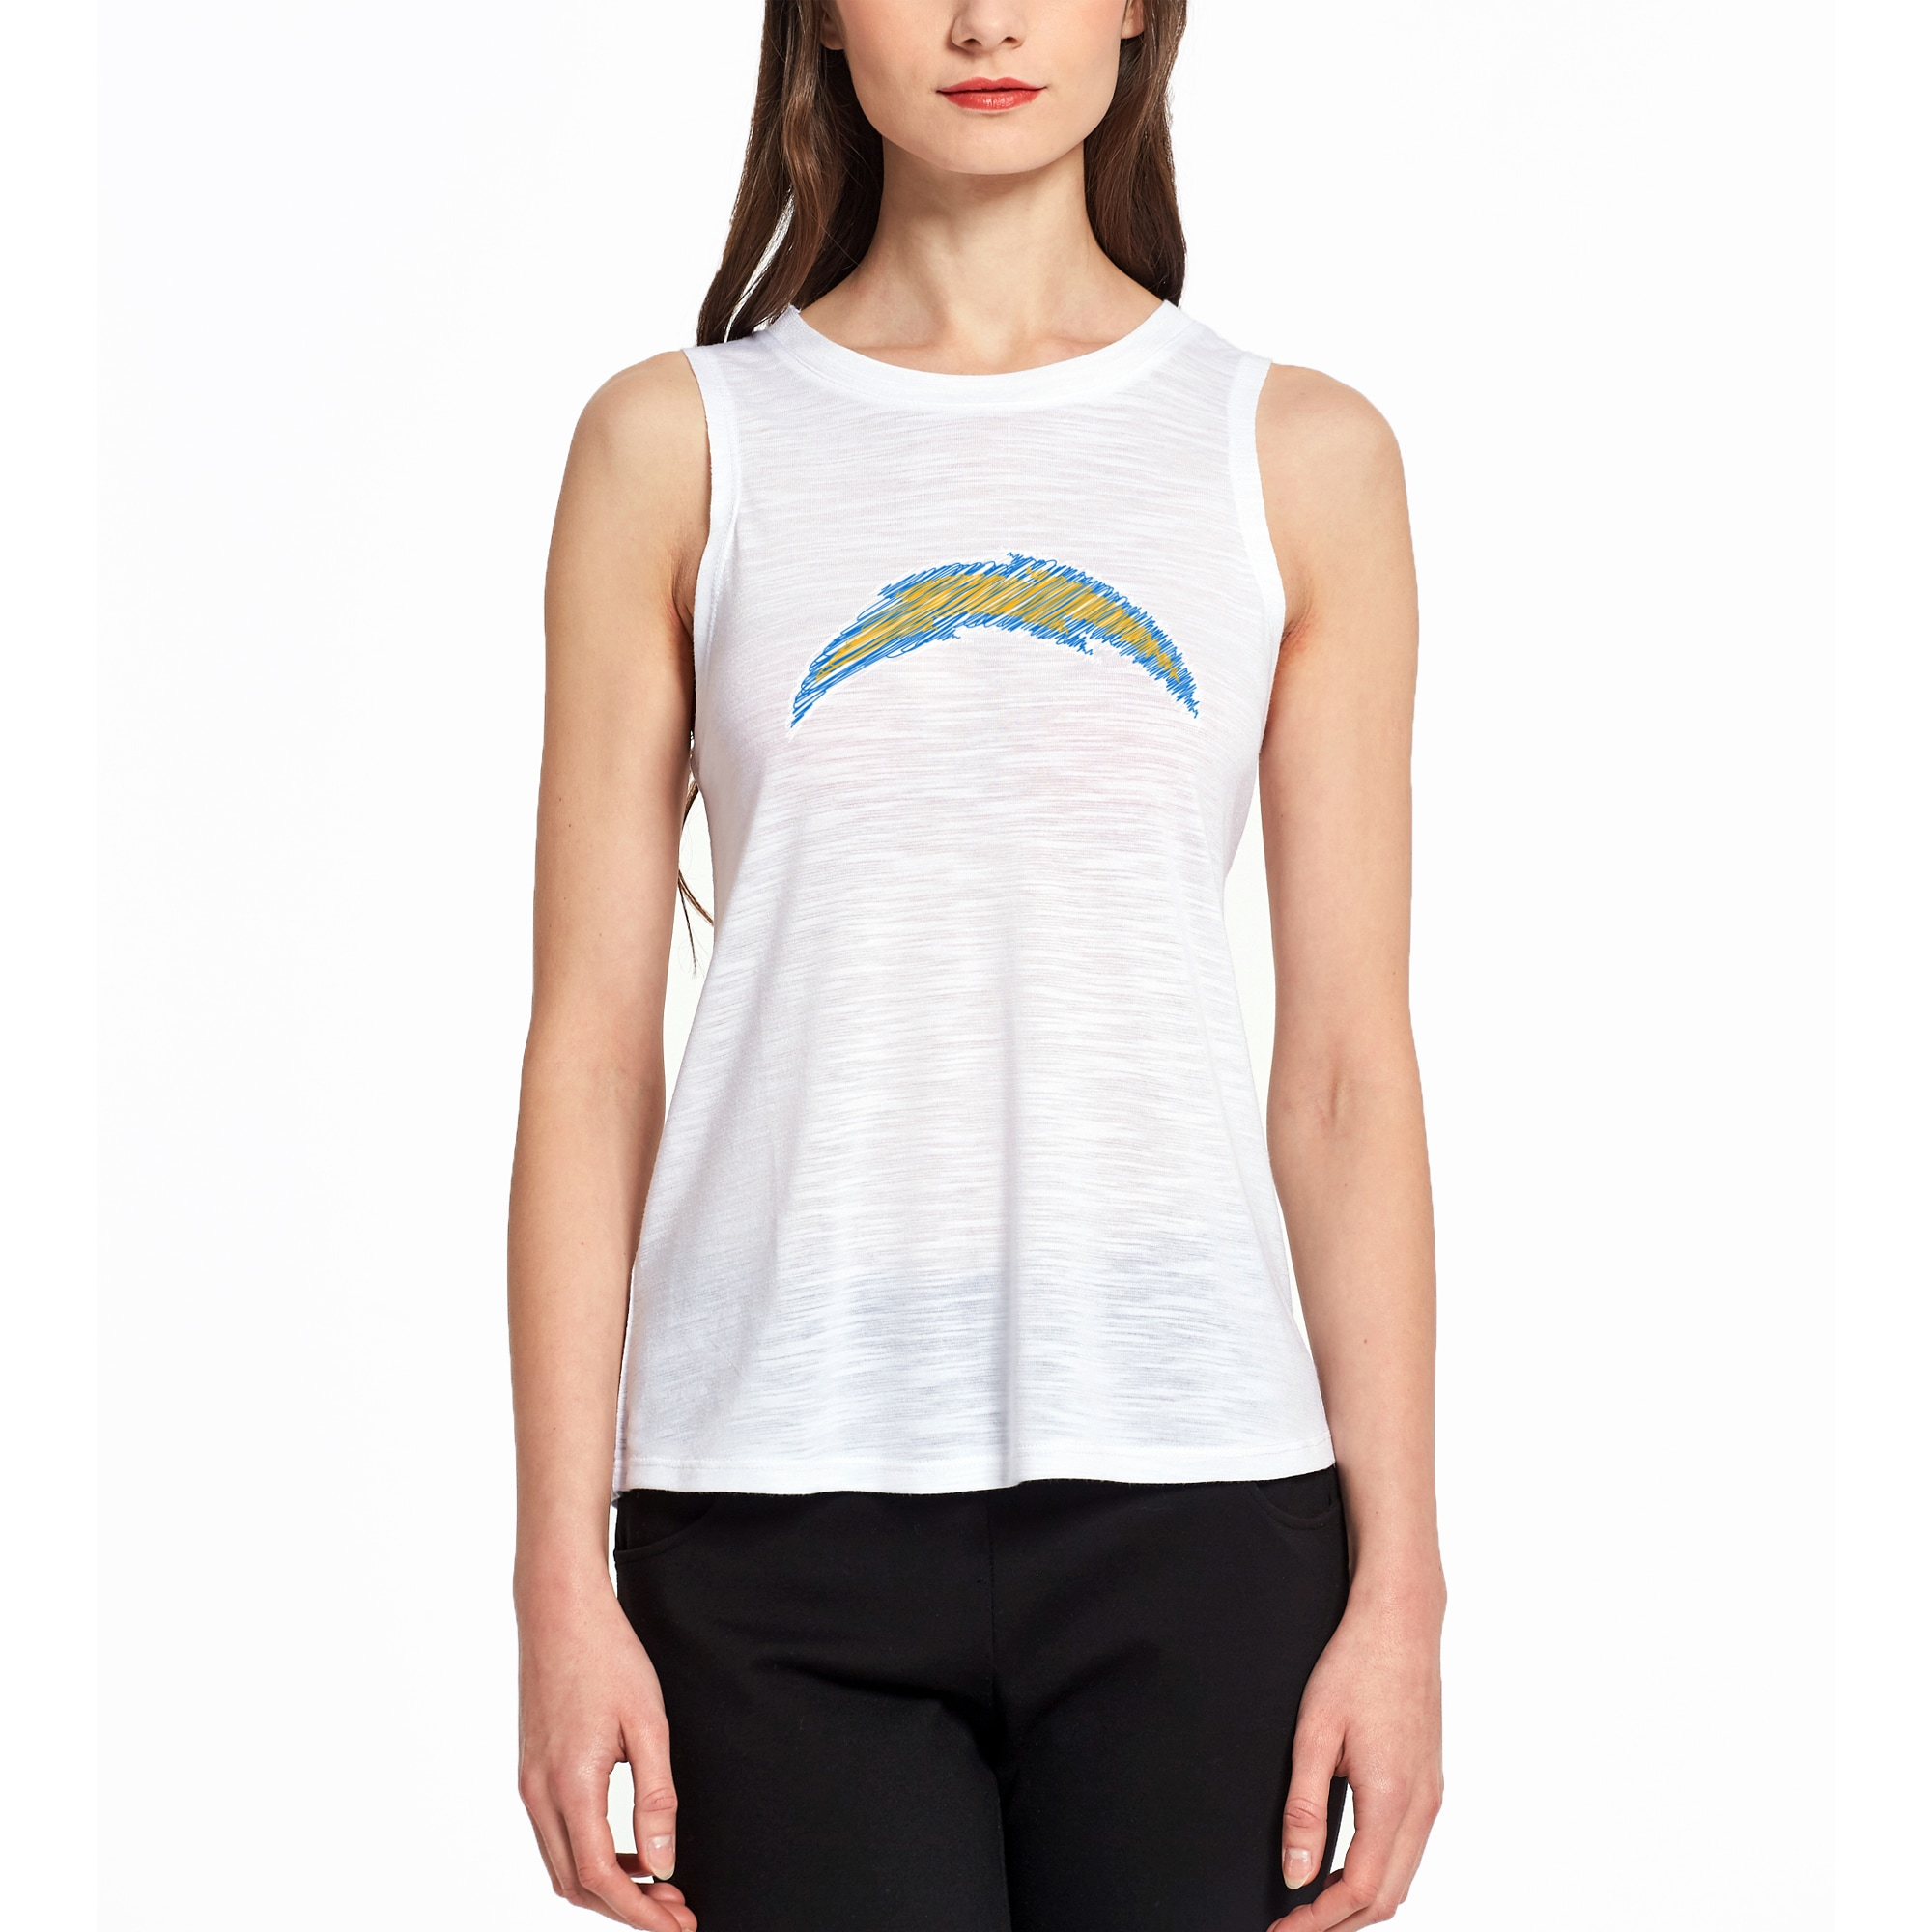 Los Angeles Chargers Concepts Sport Women's Infuse Knit Tank Top - White